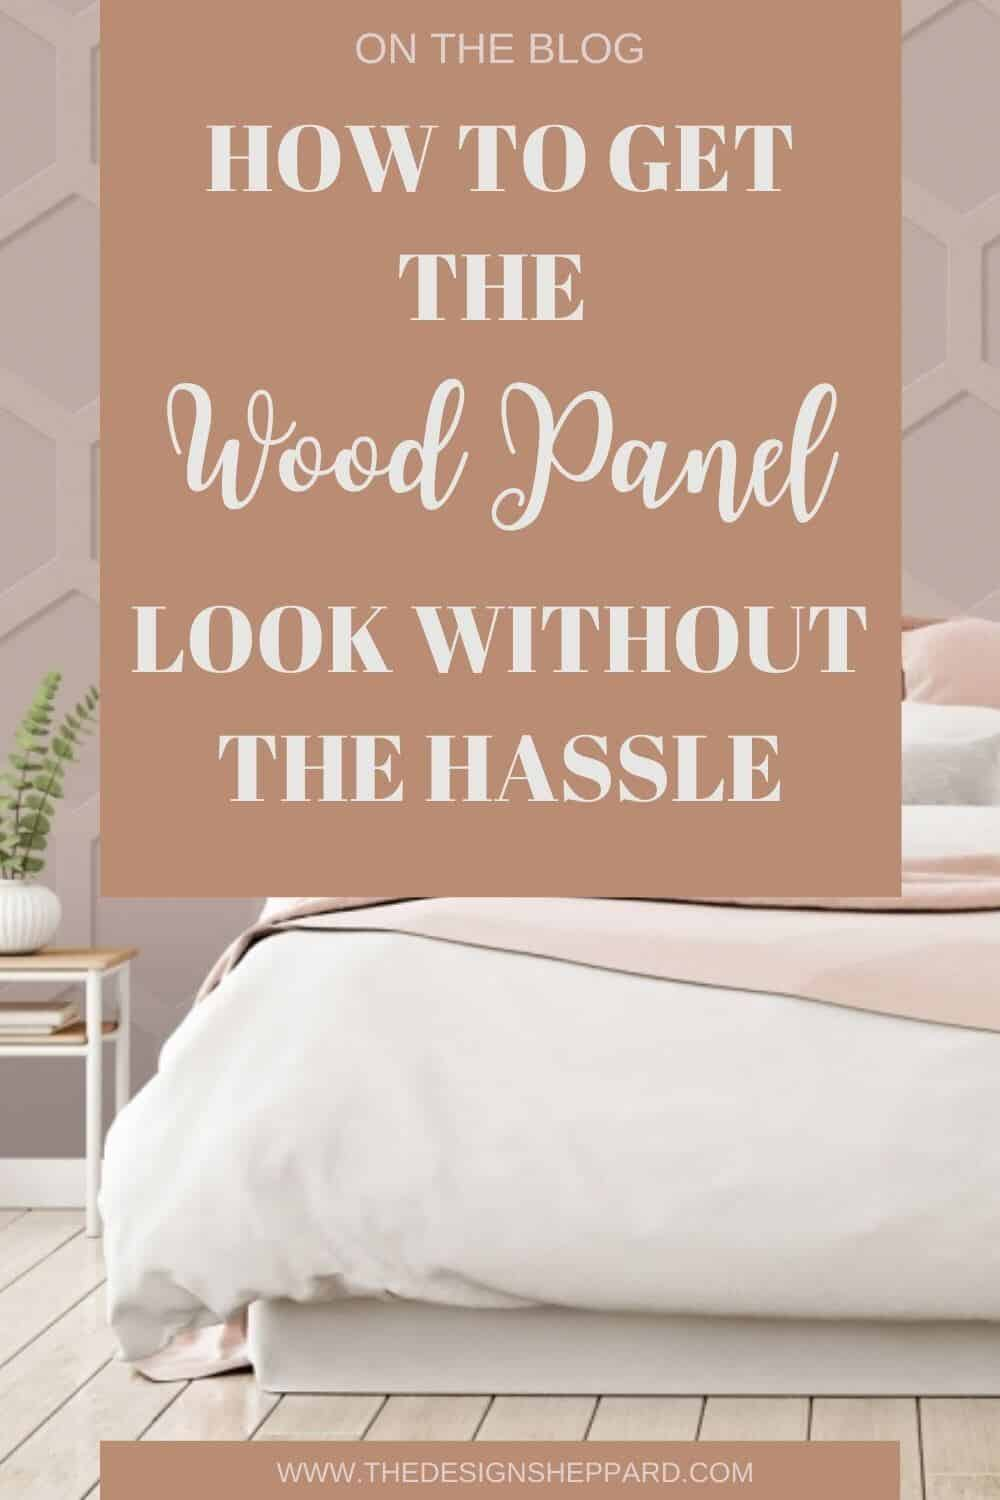 Pinterest pin - How to get the wood panel look without the hassle by using wooden panelling wallpaper